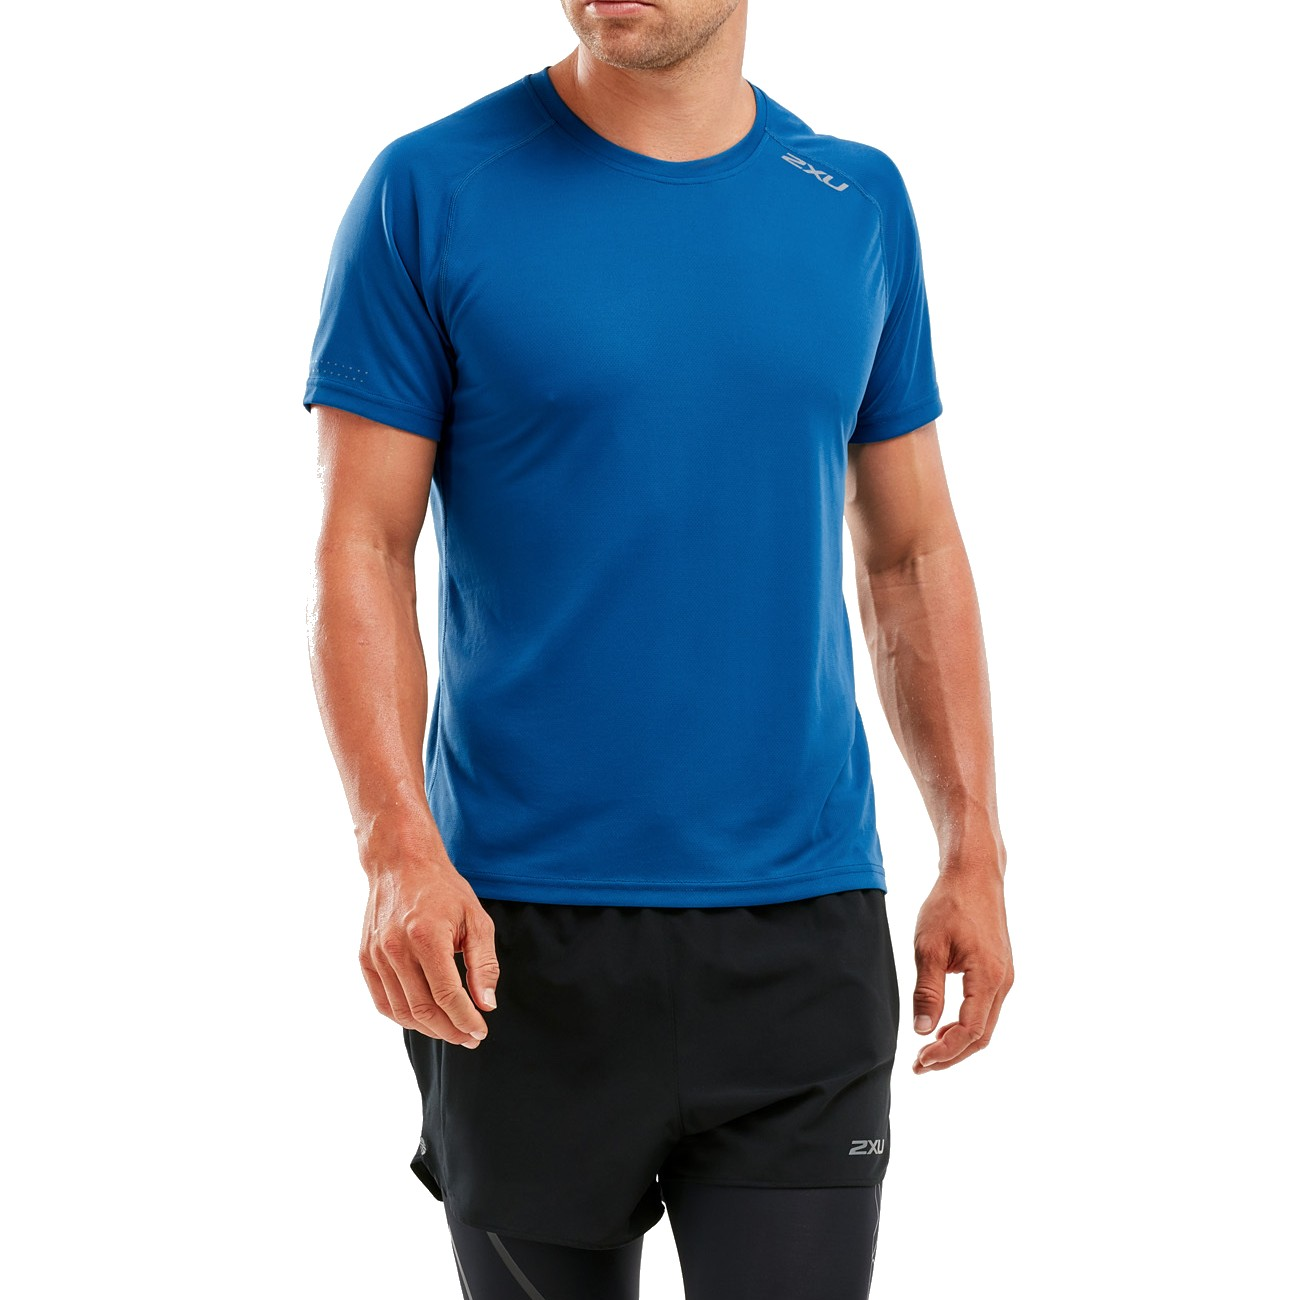 2XU XVENT S/S Tee Men's Space Blue/Reflective X